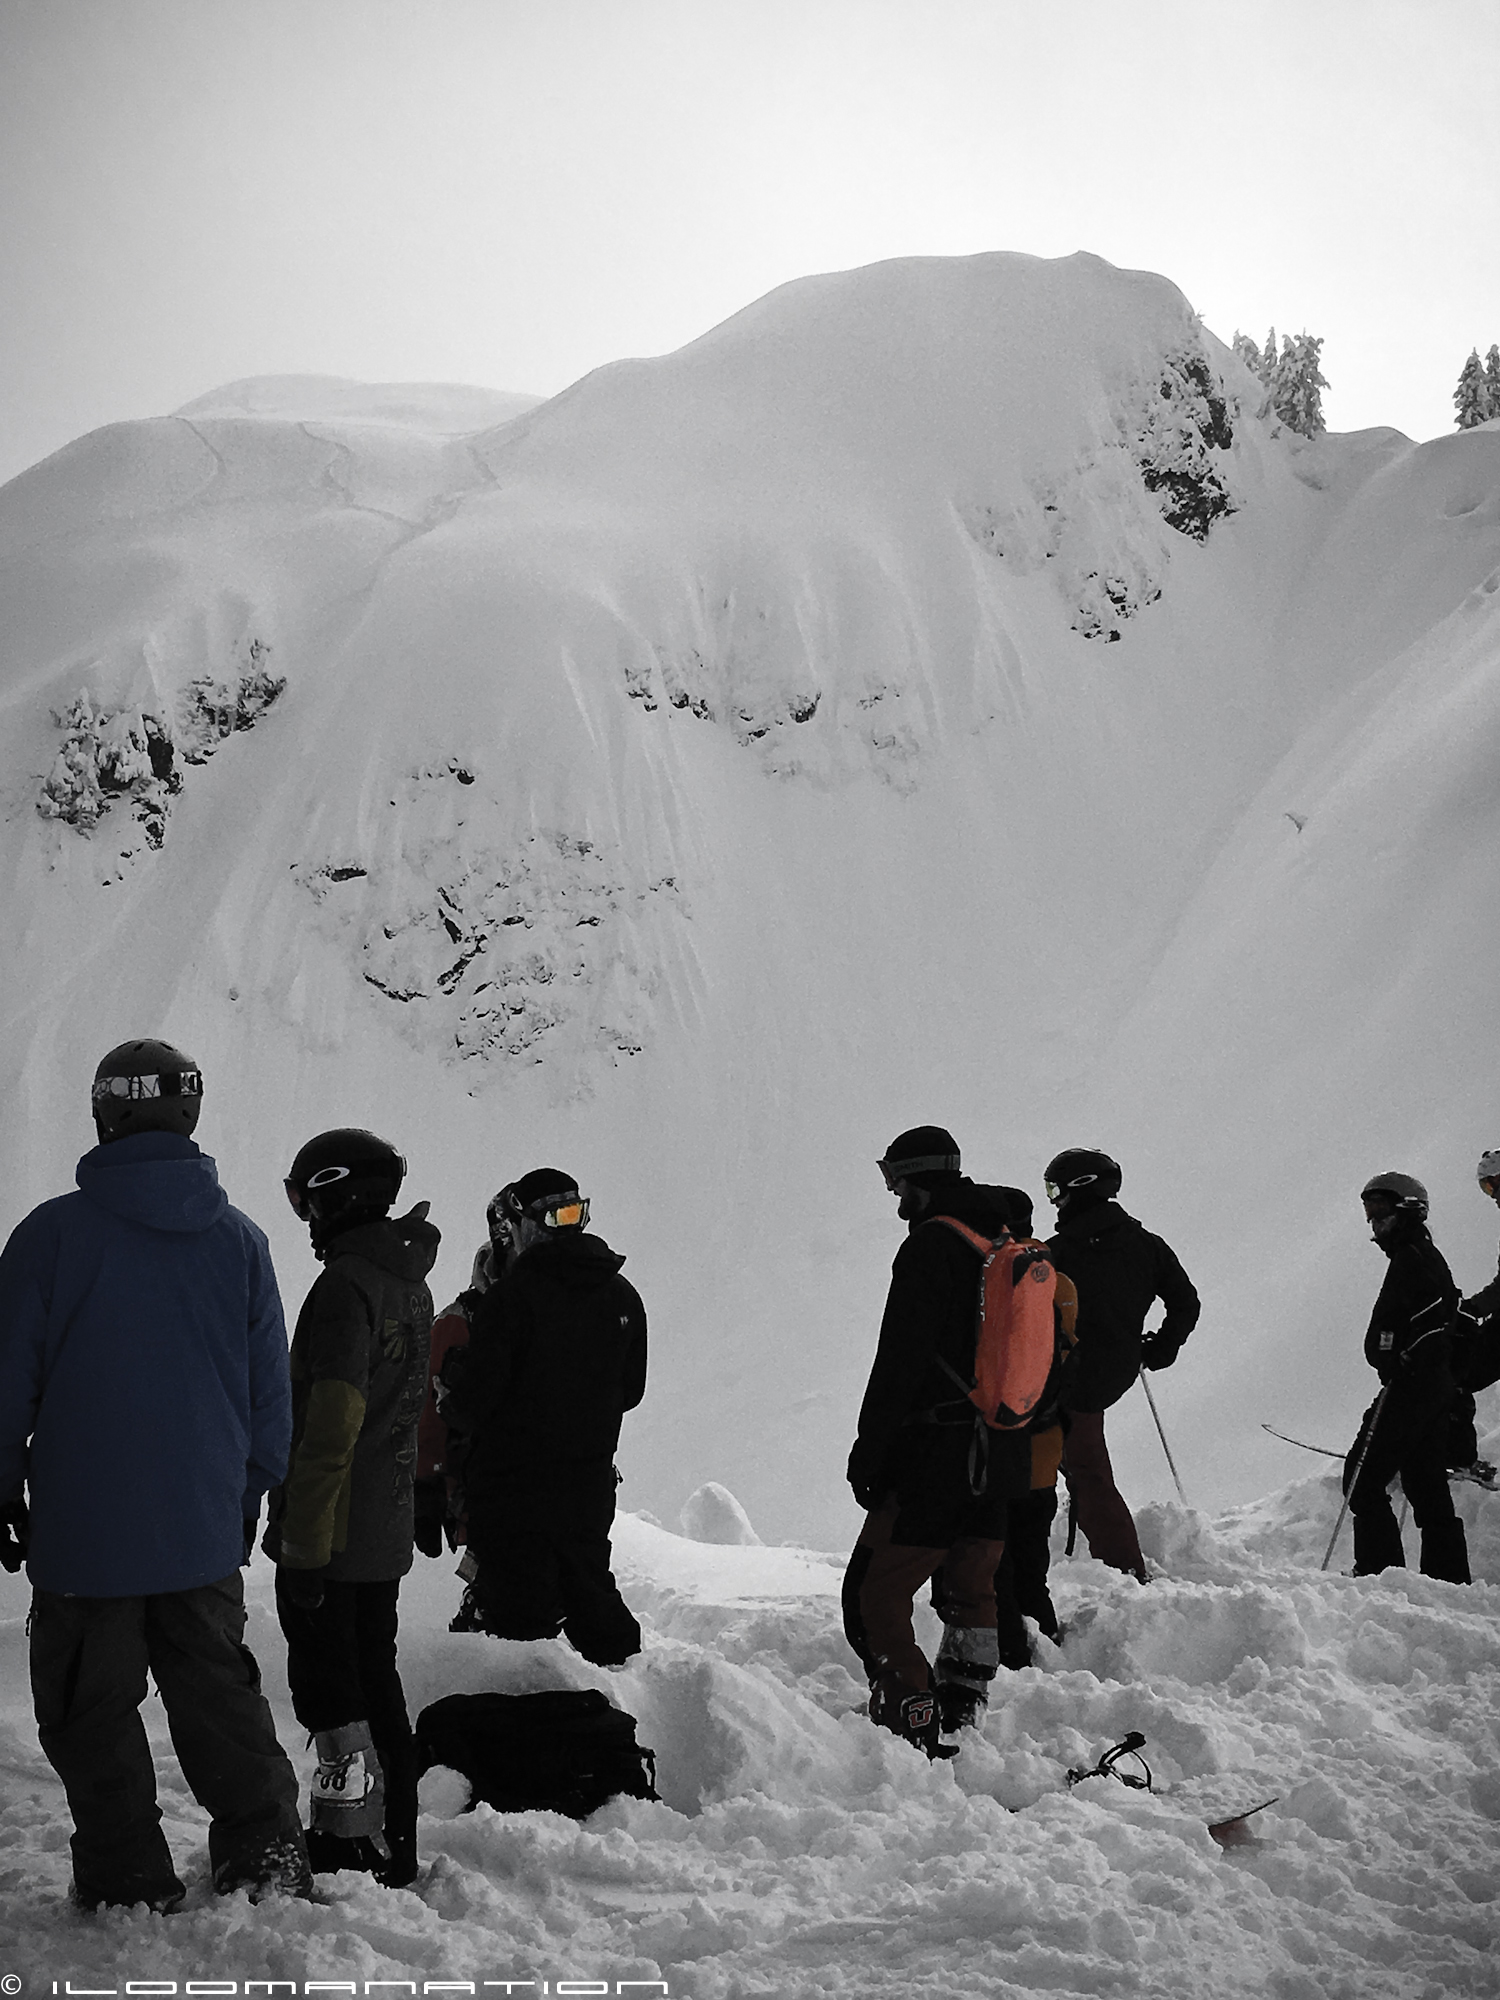 a few riders having a look at 'the arm', the area where we witnessed three avalanches within minutes.